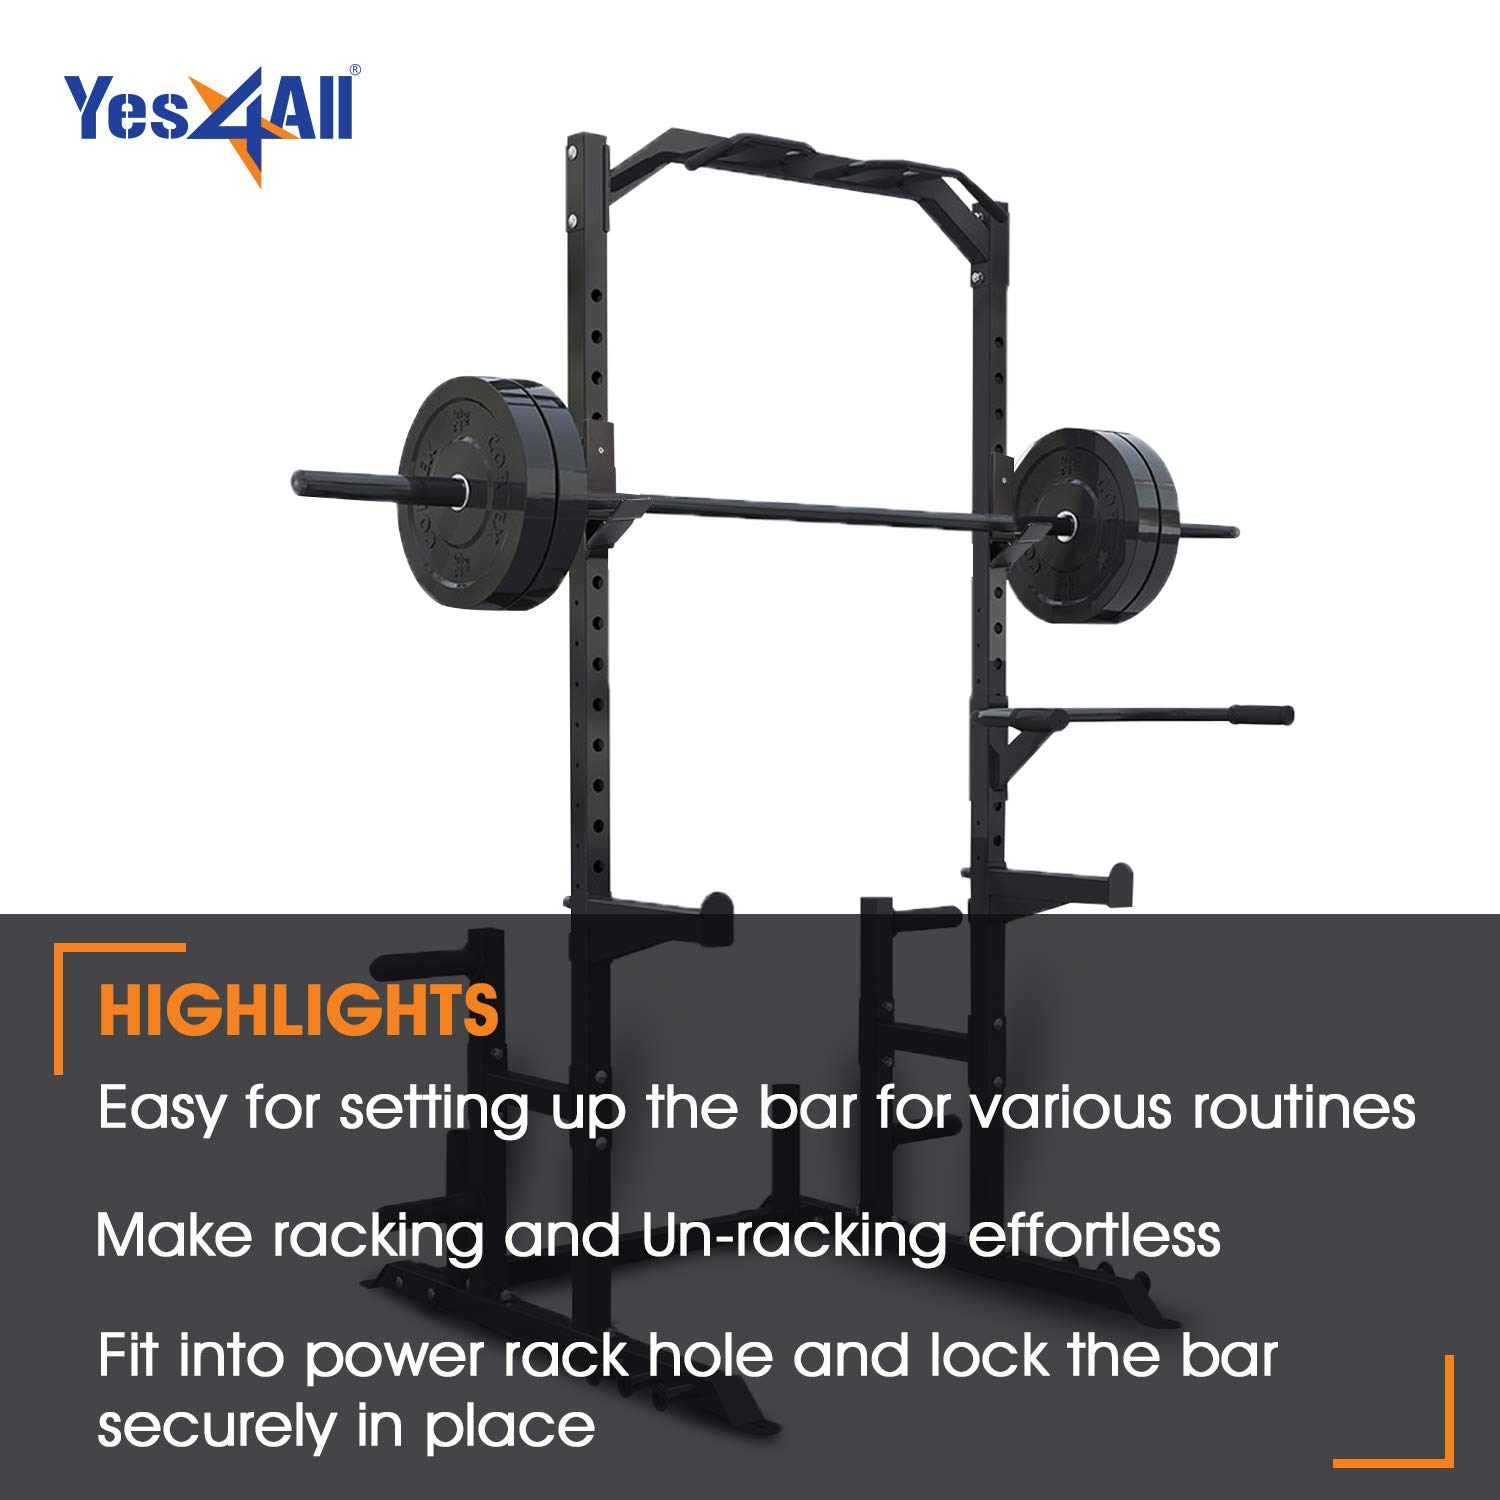 Yes4All J-Hooks Barbell Holder for Power Rack - Fit 2x2, 2x3, 3x3 Square Tube (Pair) (Black - J-Hook 2x3) by Yes4All (Image #5)